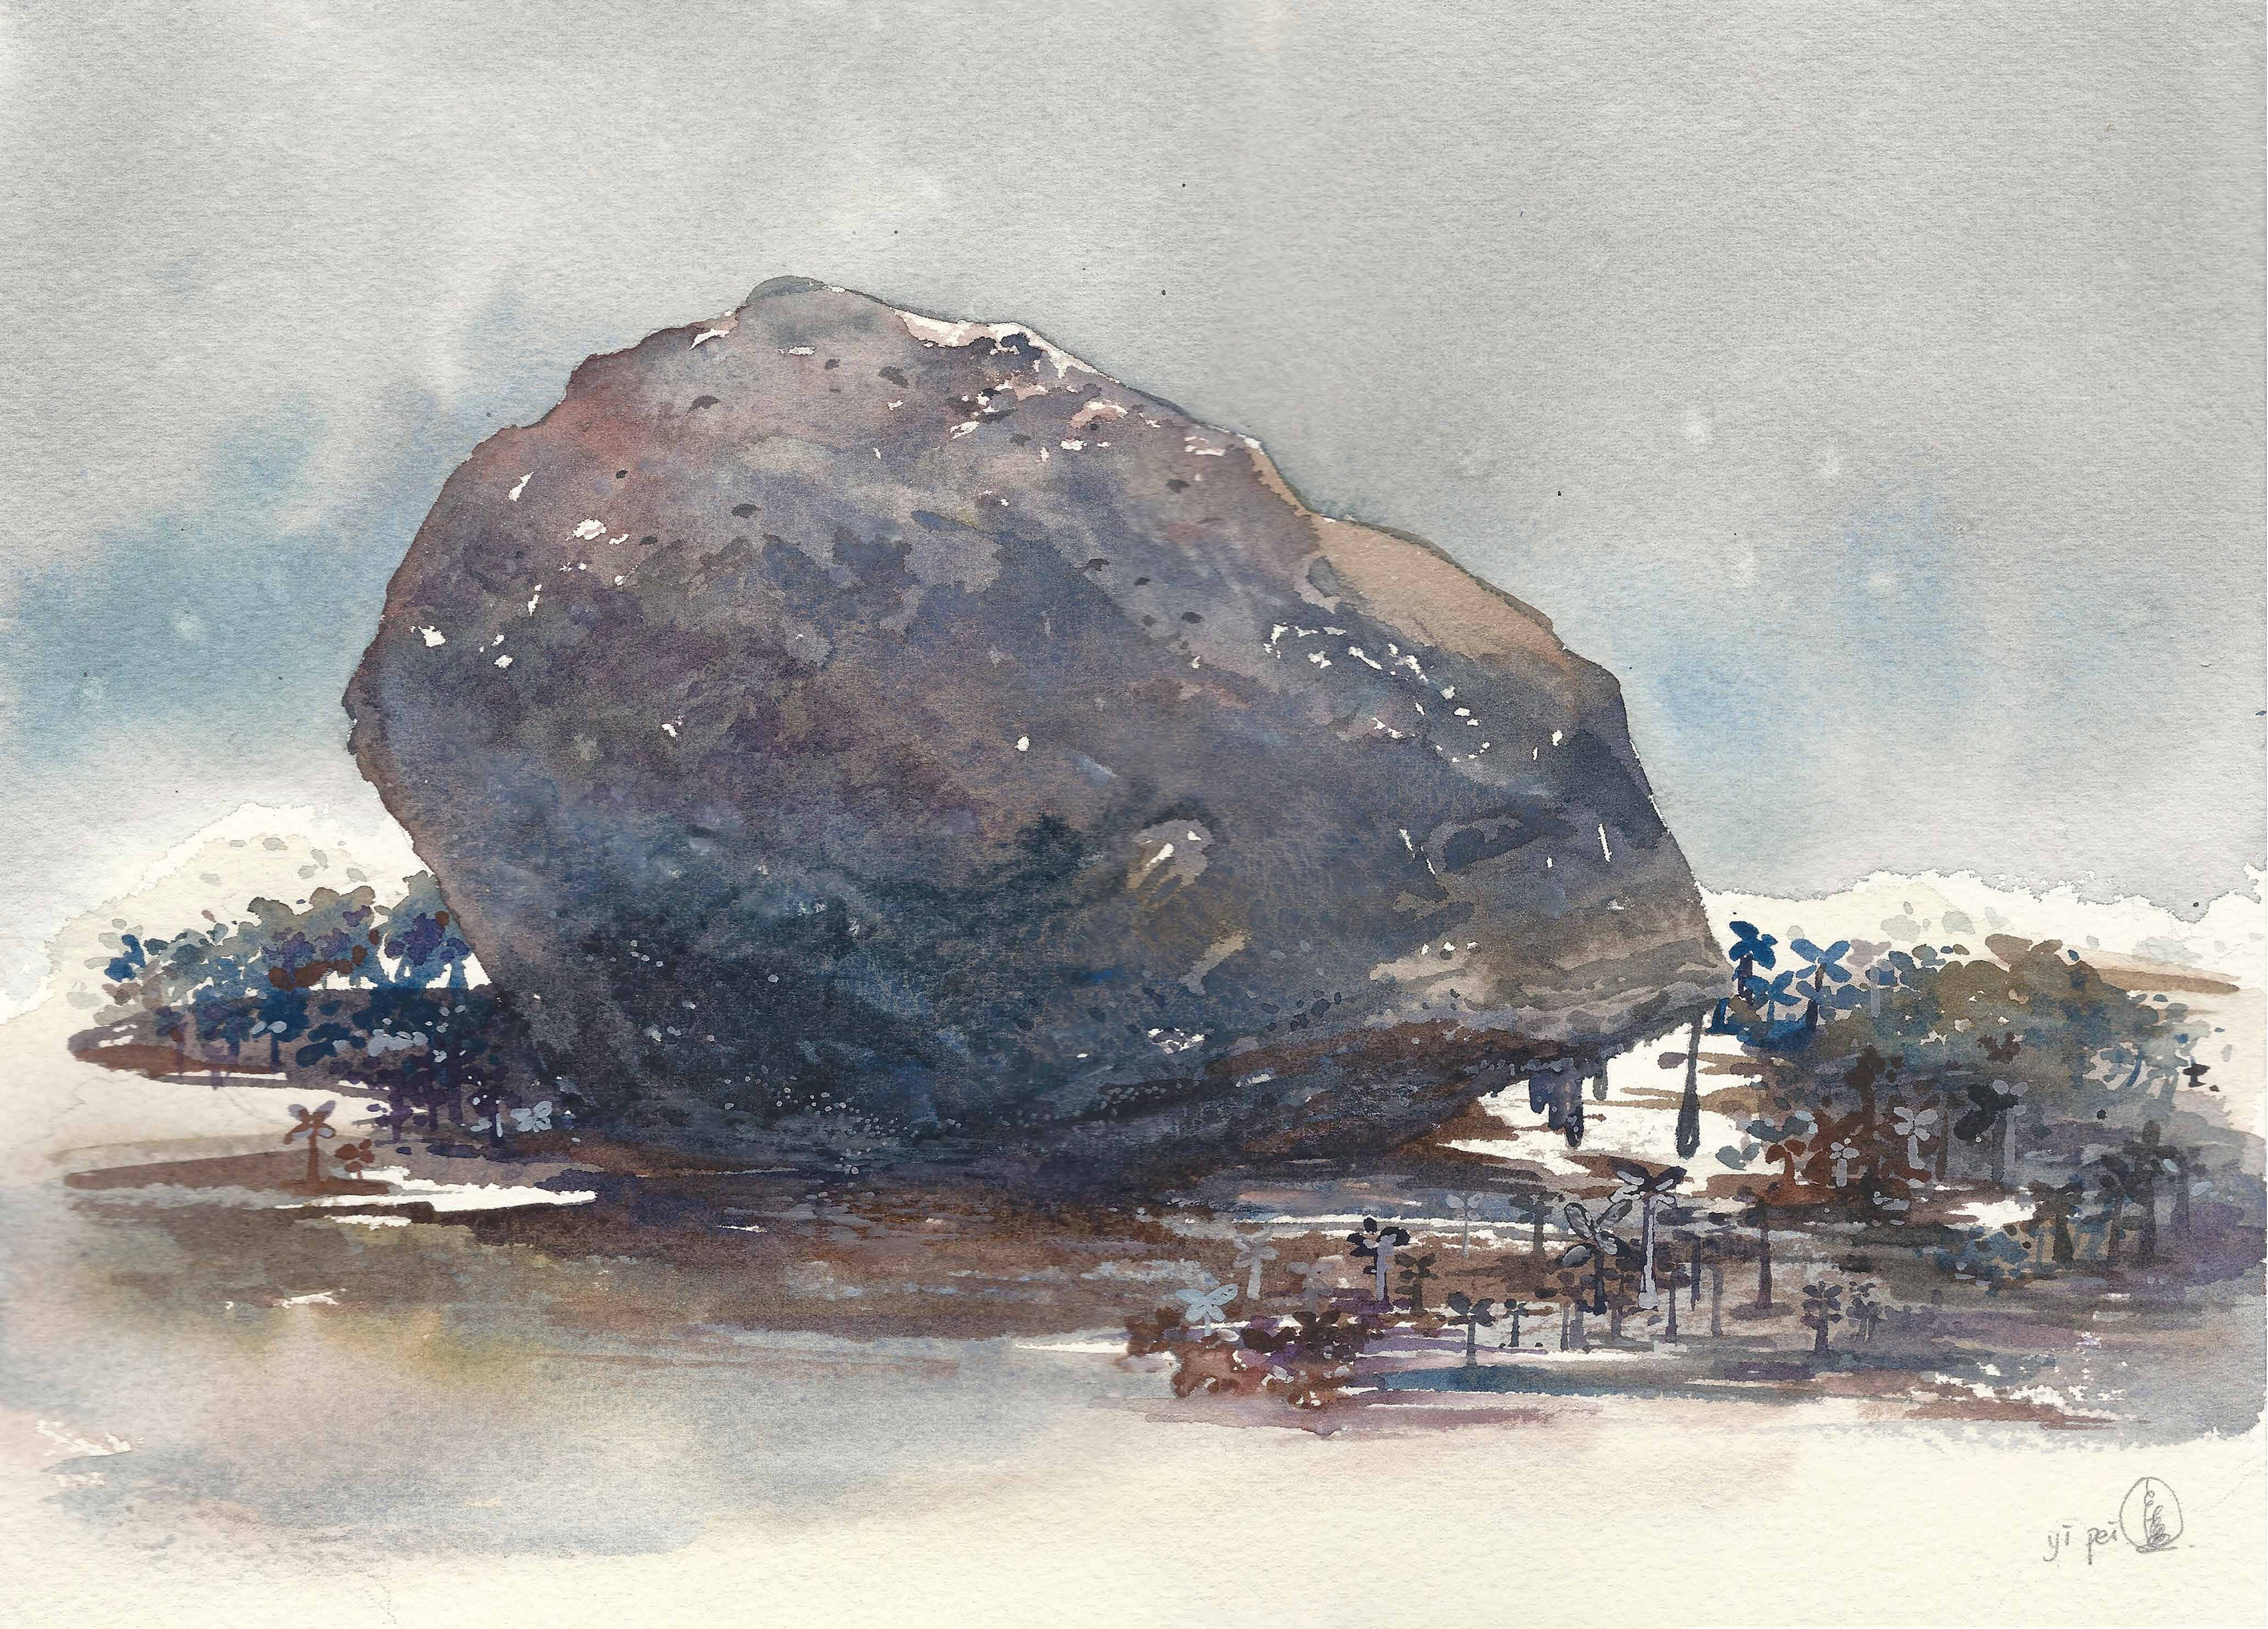 Melting Rock, watercolour on paper, 25x35cm, 2018.